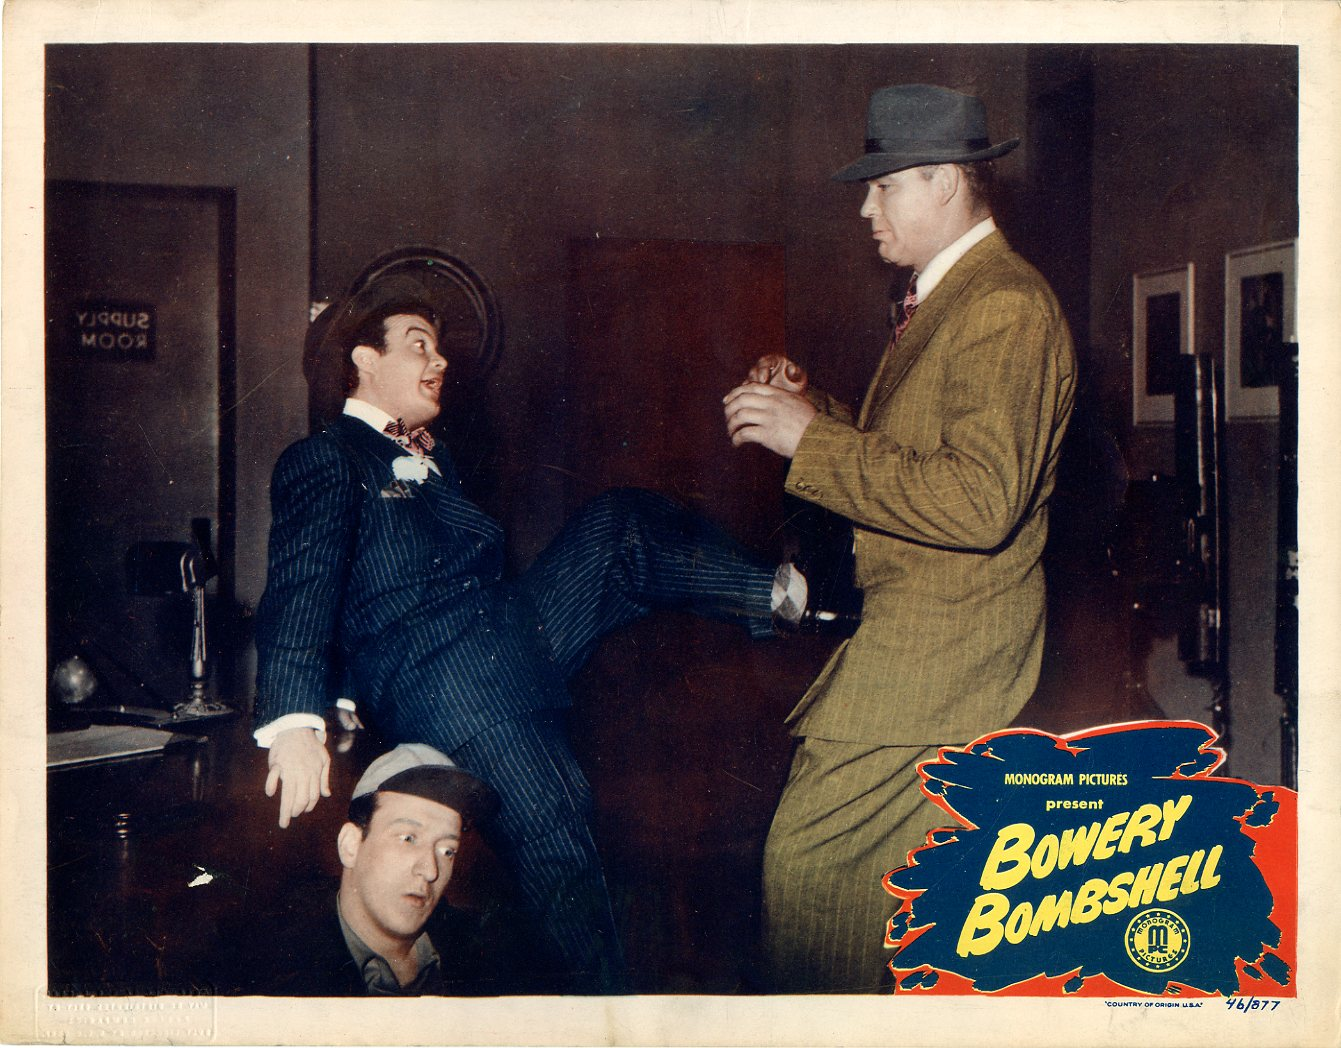 Download Bowery Bombshell Full-Movie Free